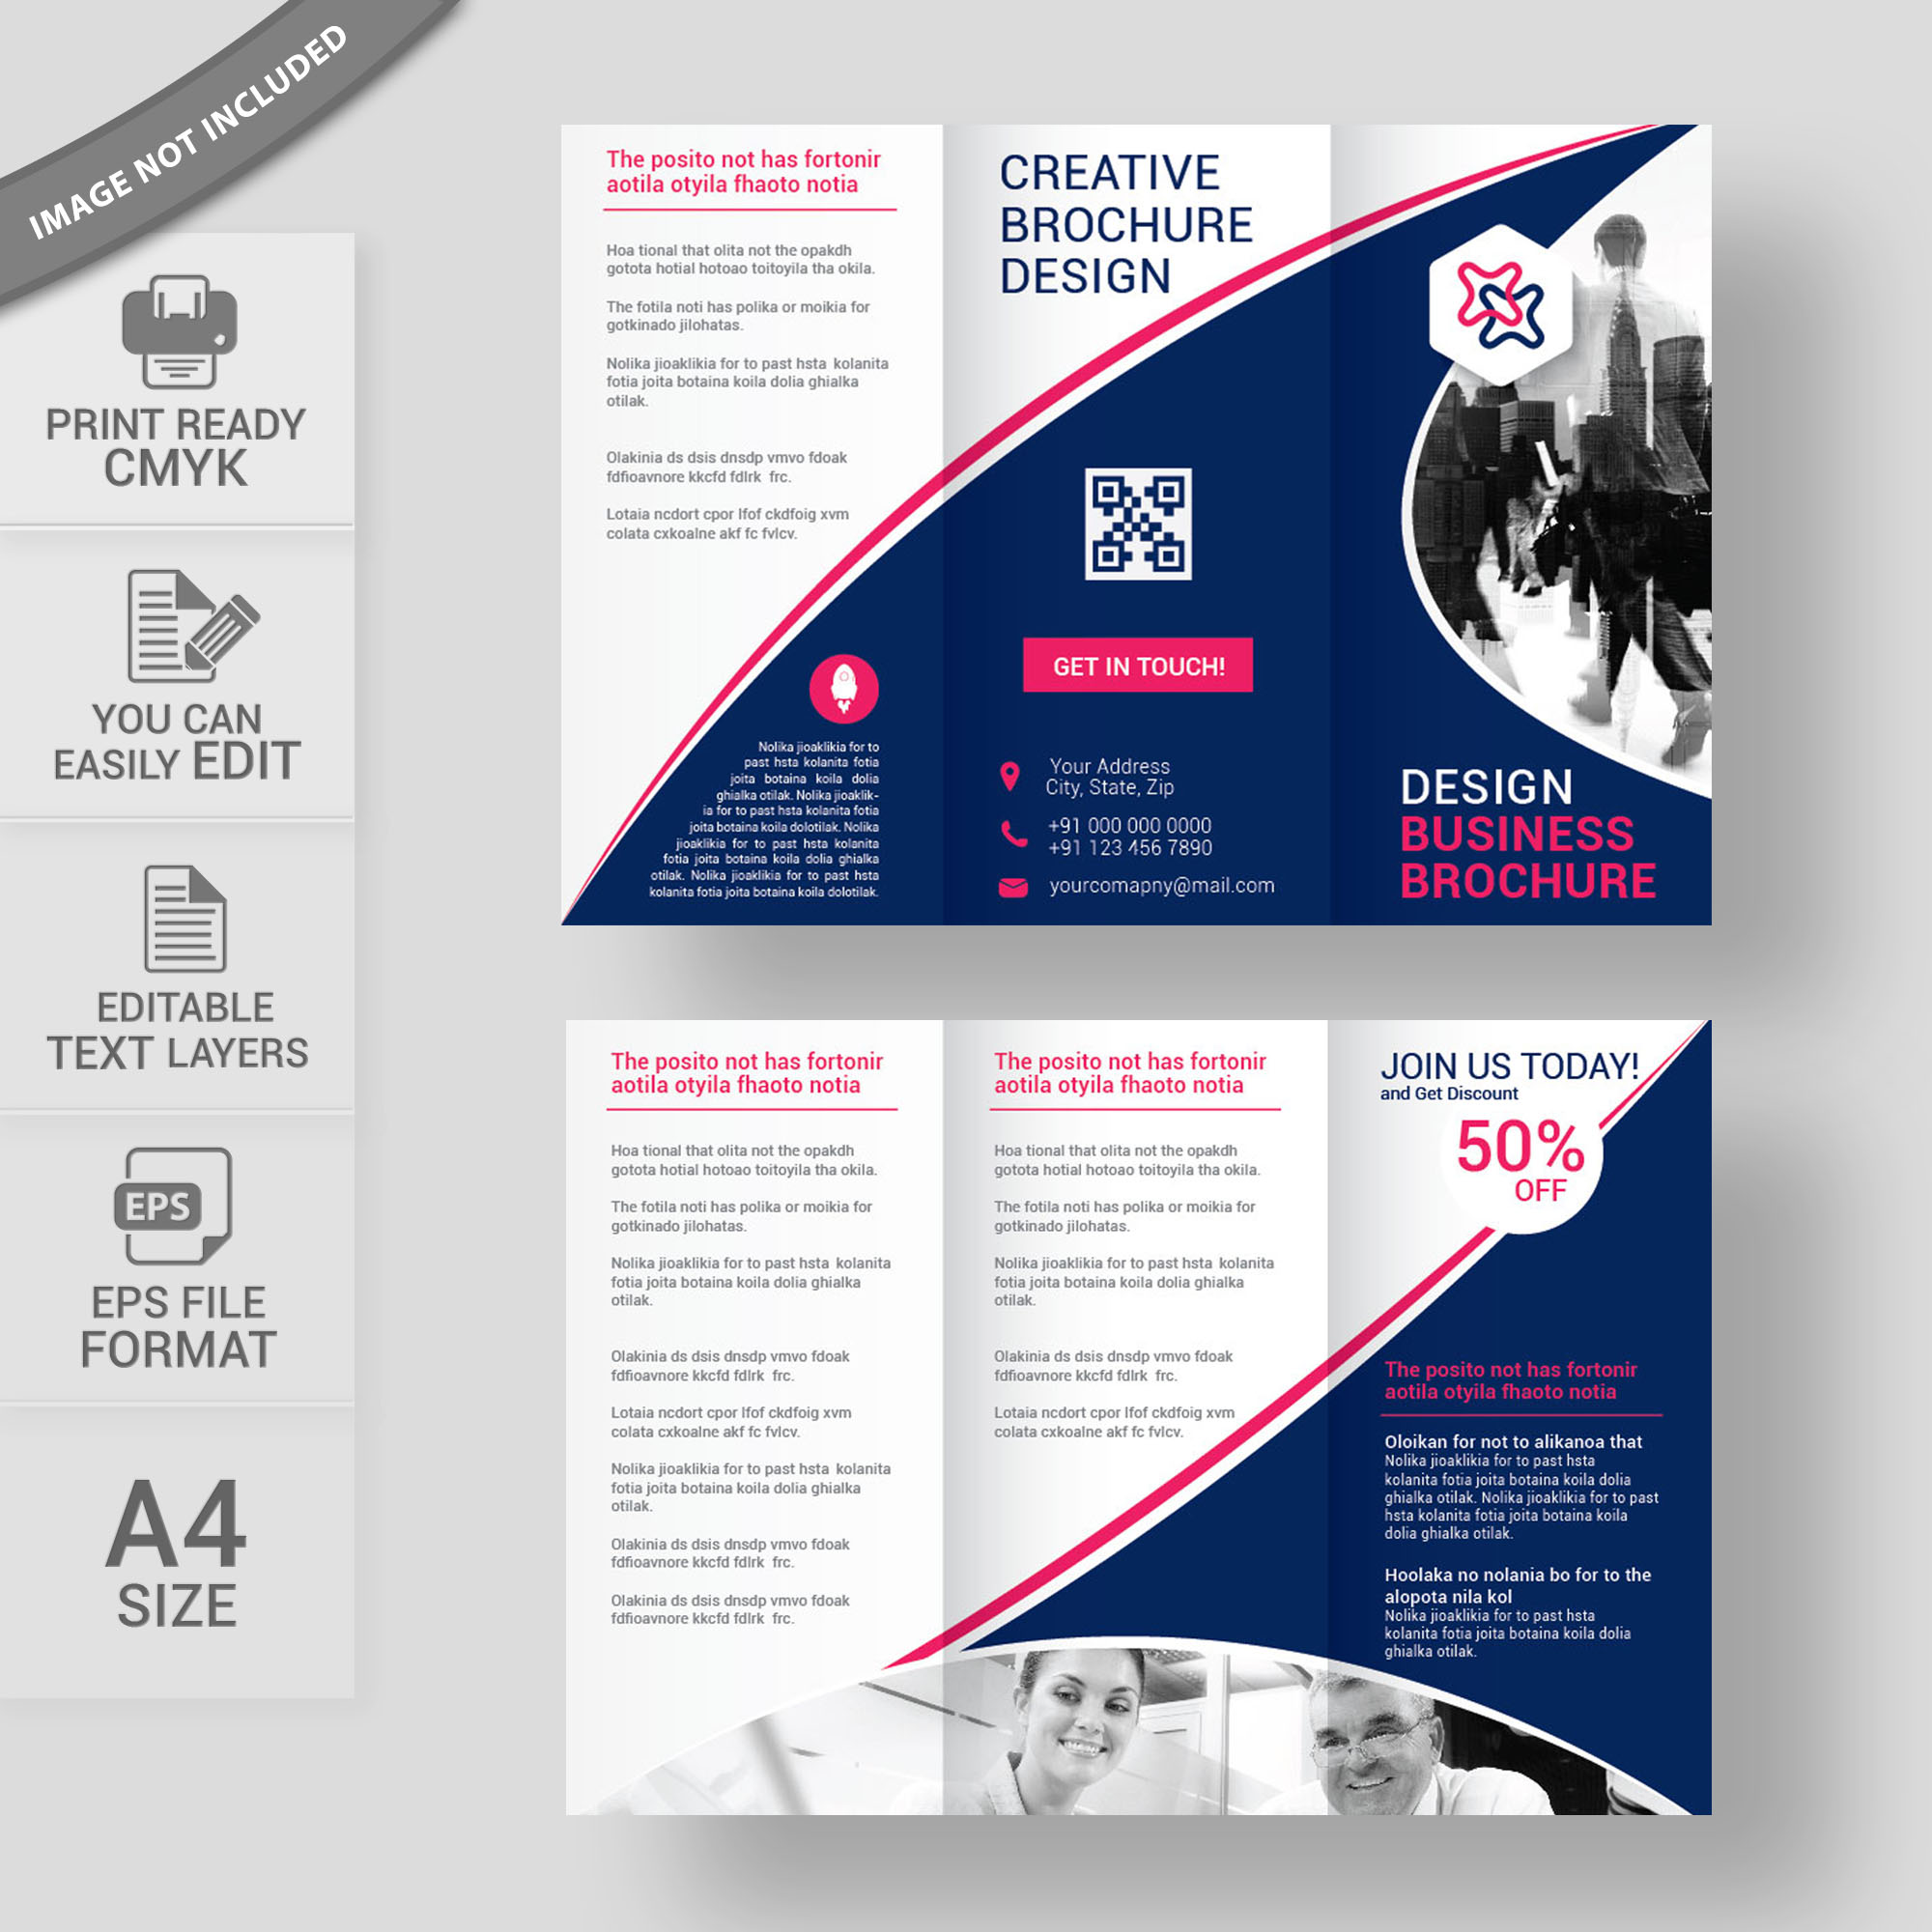 Corporate tri fold brochure template free download wisxi brochure design brochures tri fold brochures fold brochure brochure template accmission Choice Image